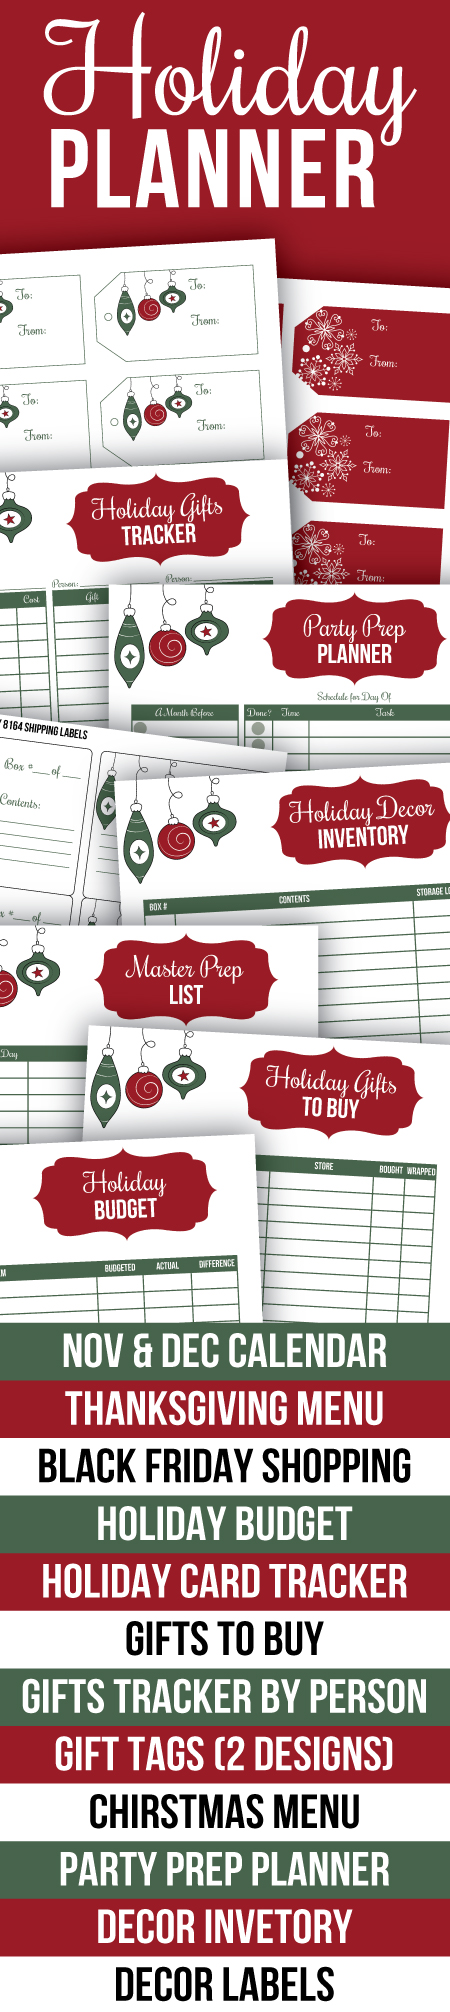 Printable Holiday Planner - everything you need to be organized this Christmas and Thanksgiving. Includes Nov and Dec calendars, Thanksgiving menu planner, Black Friday shopping list, holiday budget, holiday card tracker, gift lists, printable gift tags, Christmas menu planner, party prep planner, decor inventory, decor labels, etc.